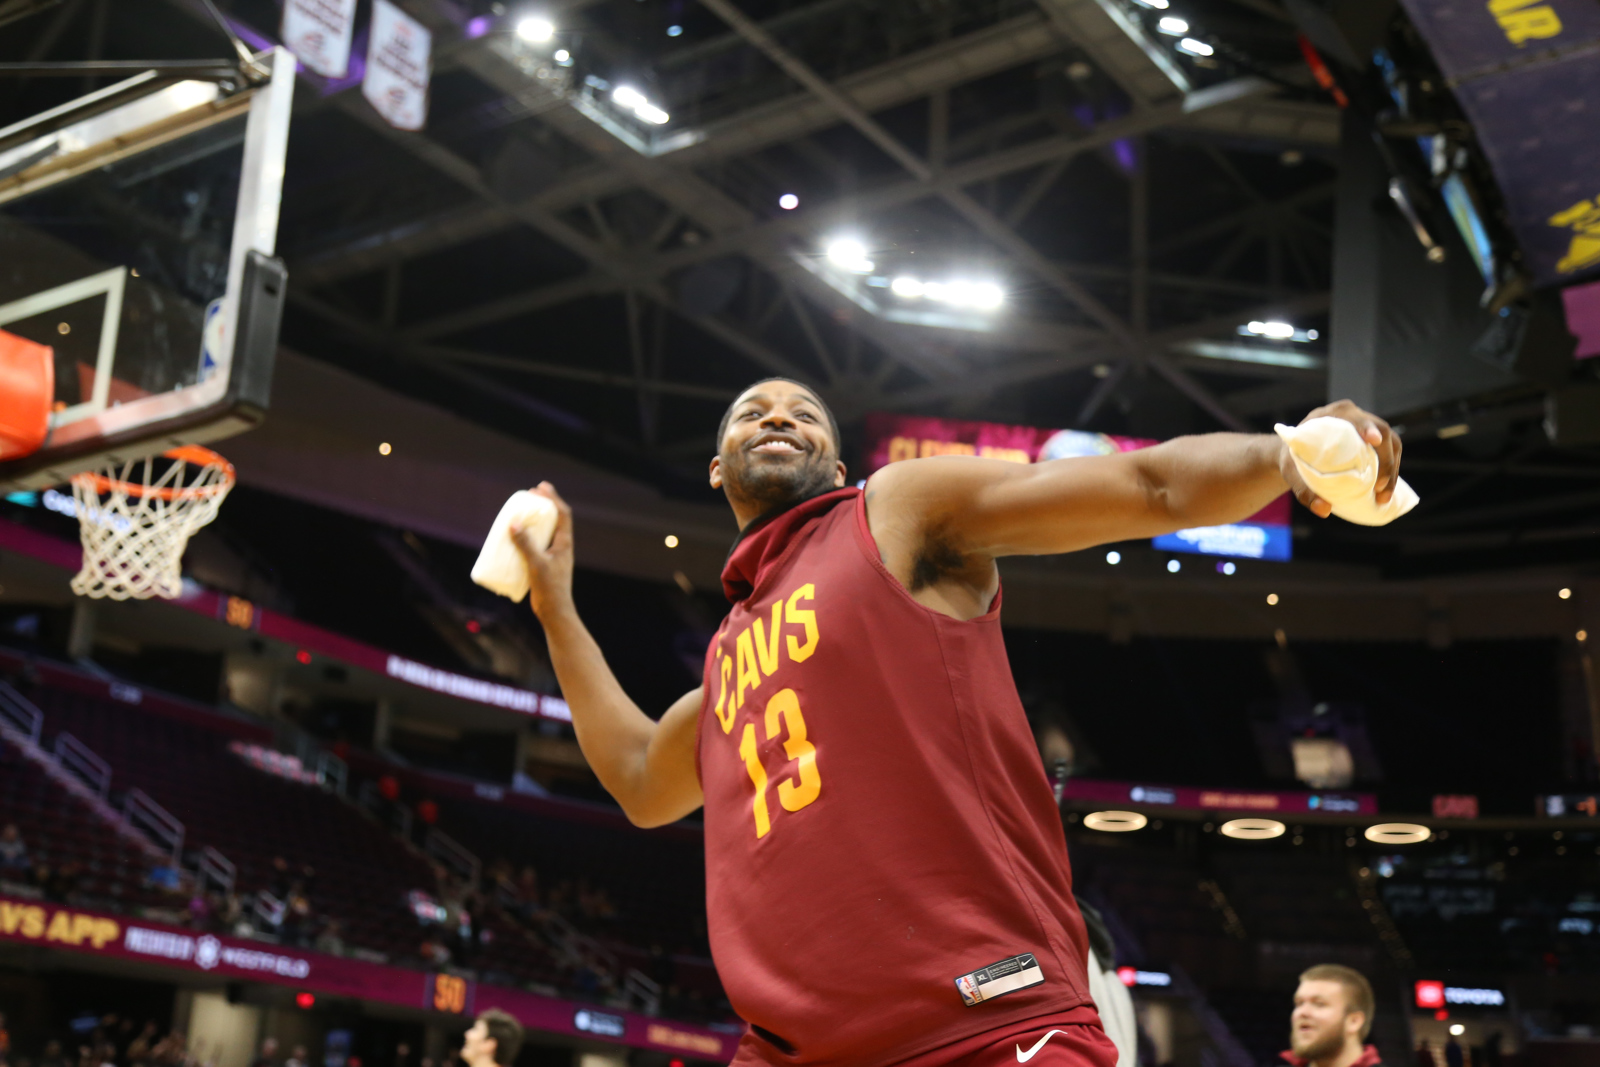 Cleveland Cavaliers turn Wine & Gold scrimmage into a lighthearted affair for fans